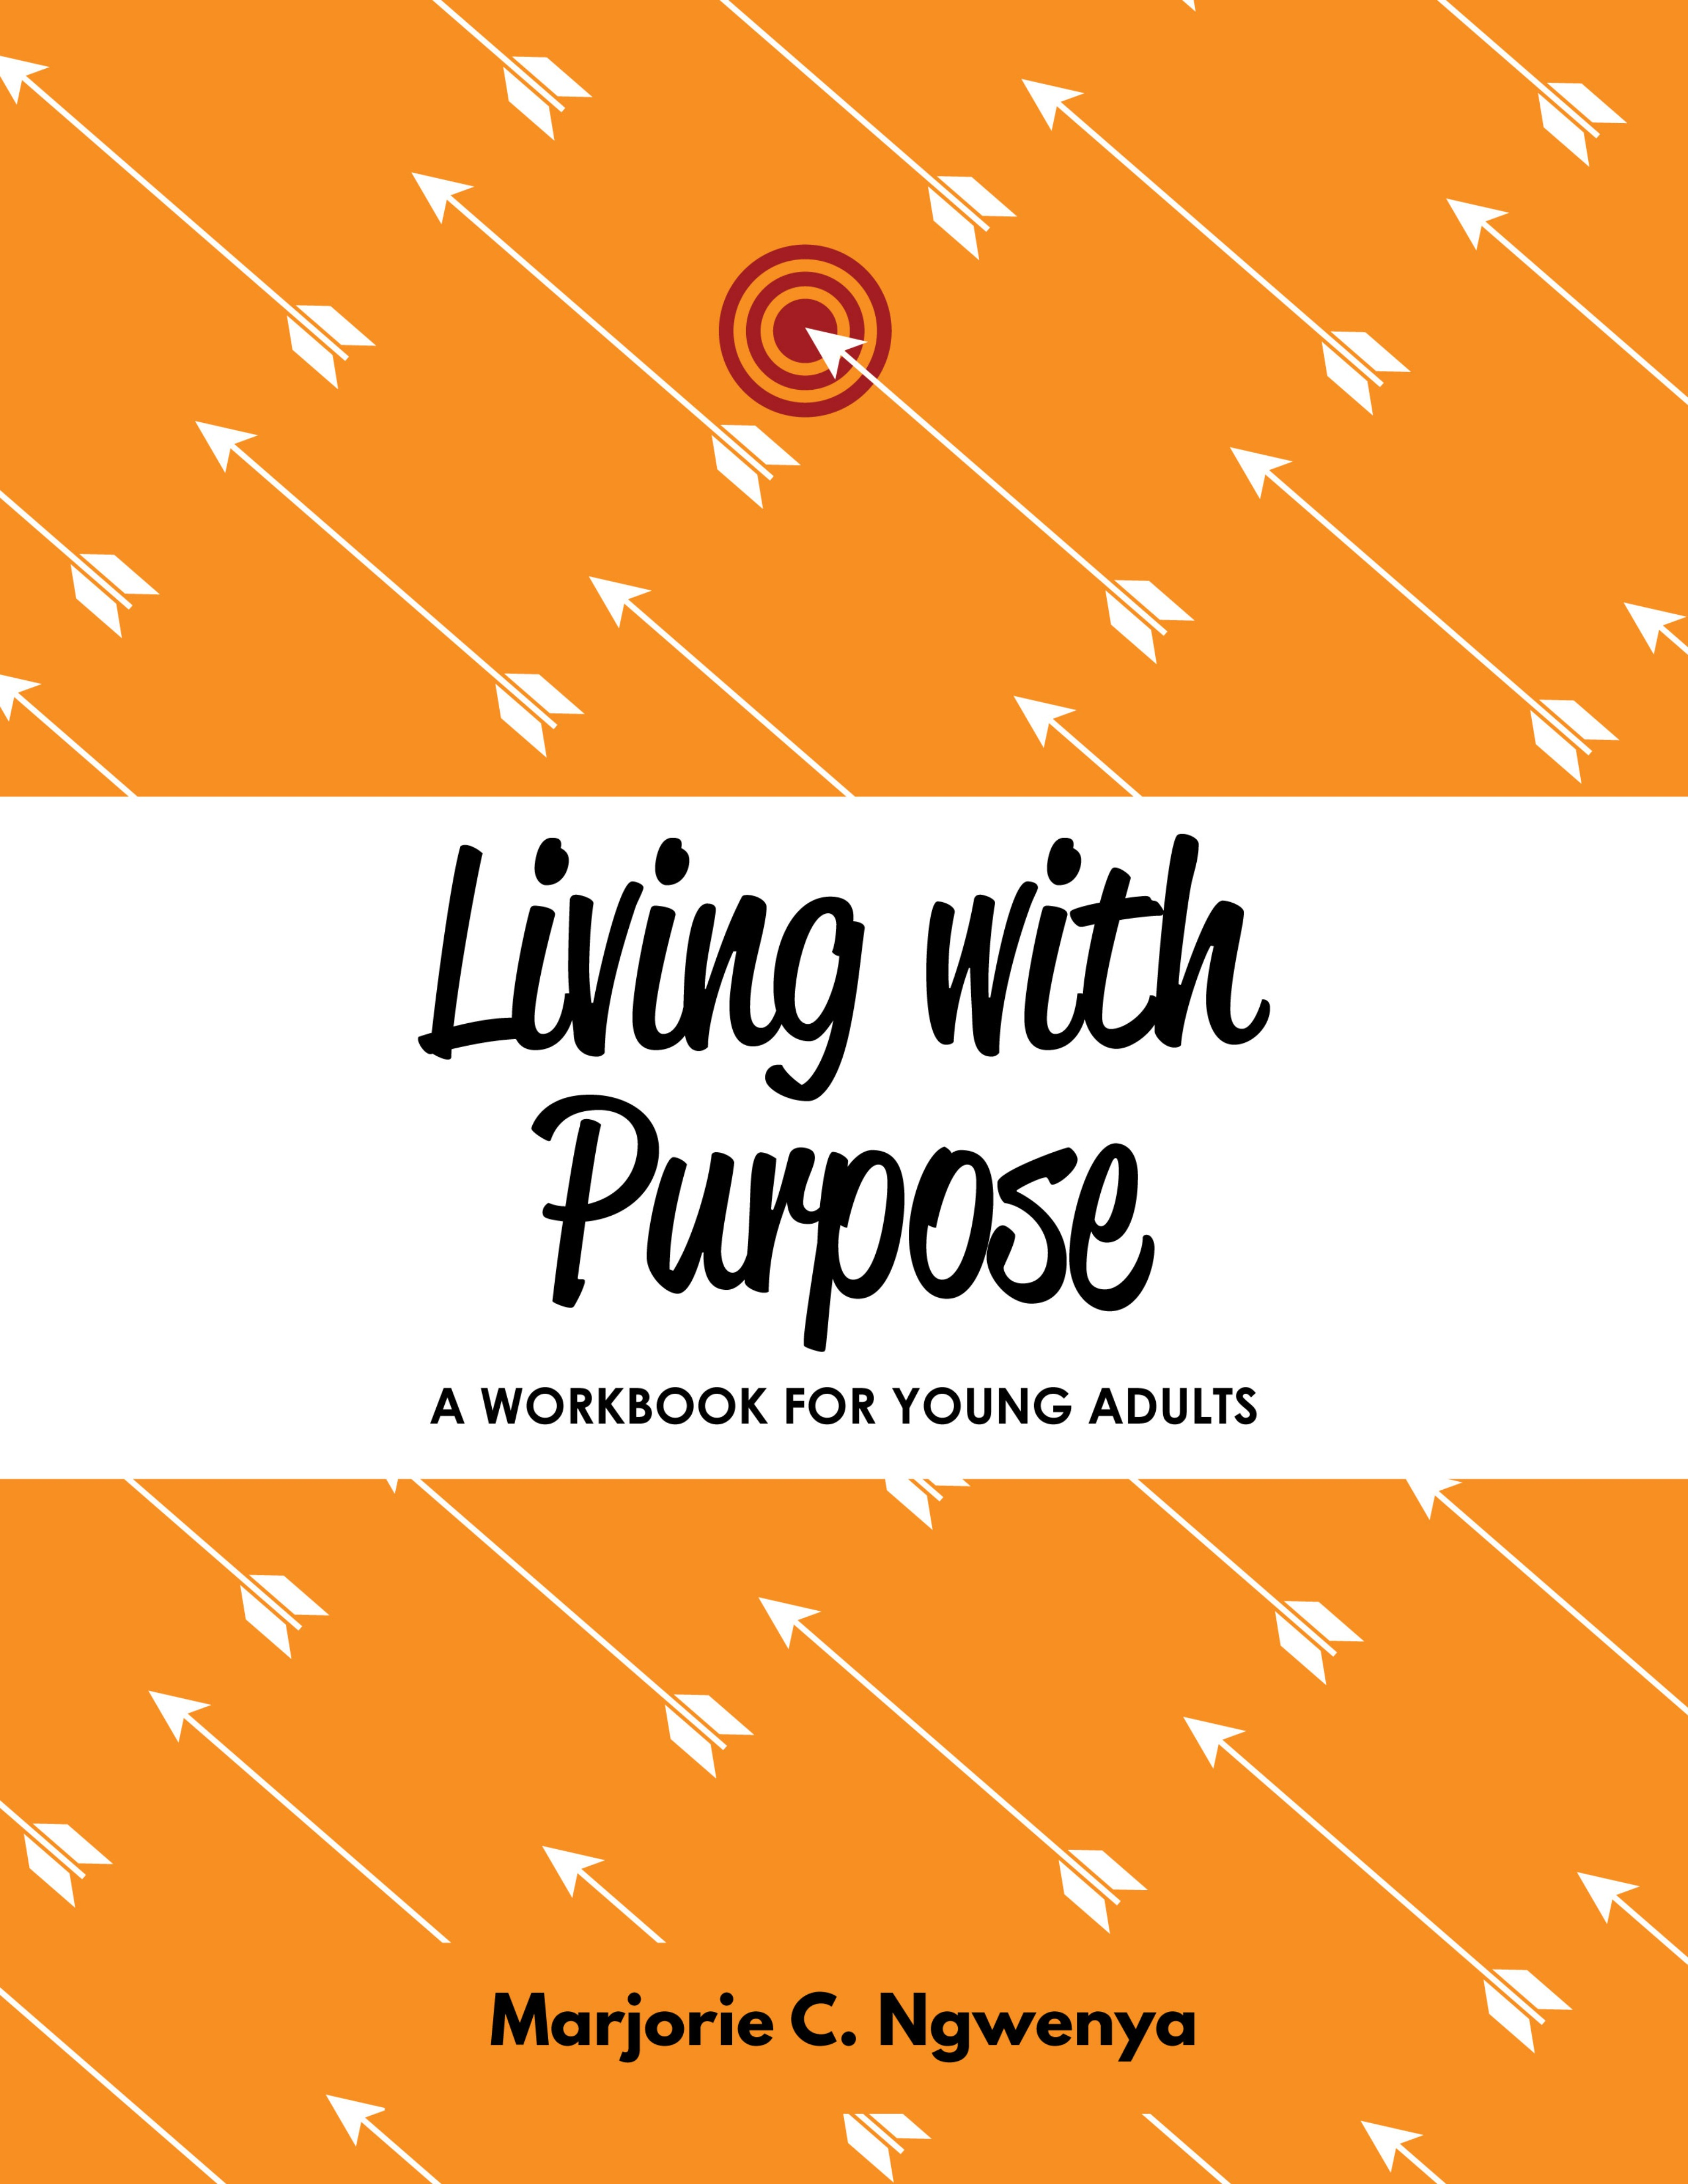 Living with Purpose: Workbook for Young Adults